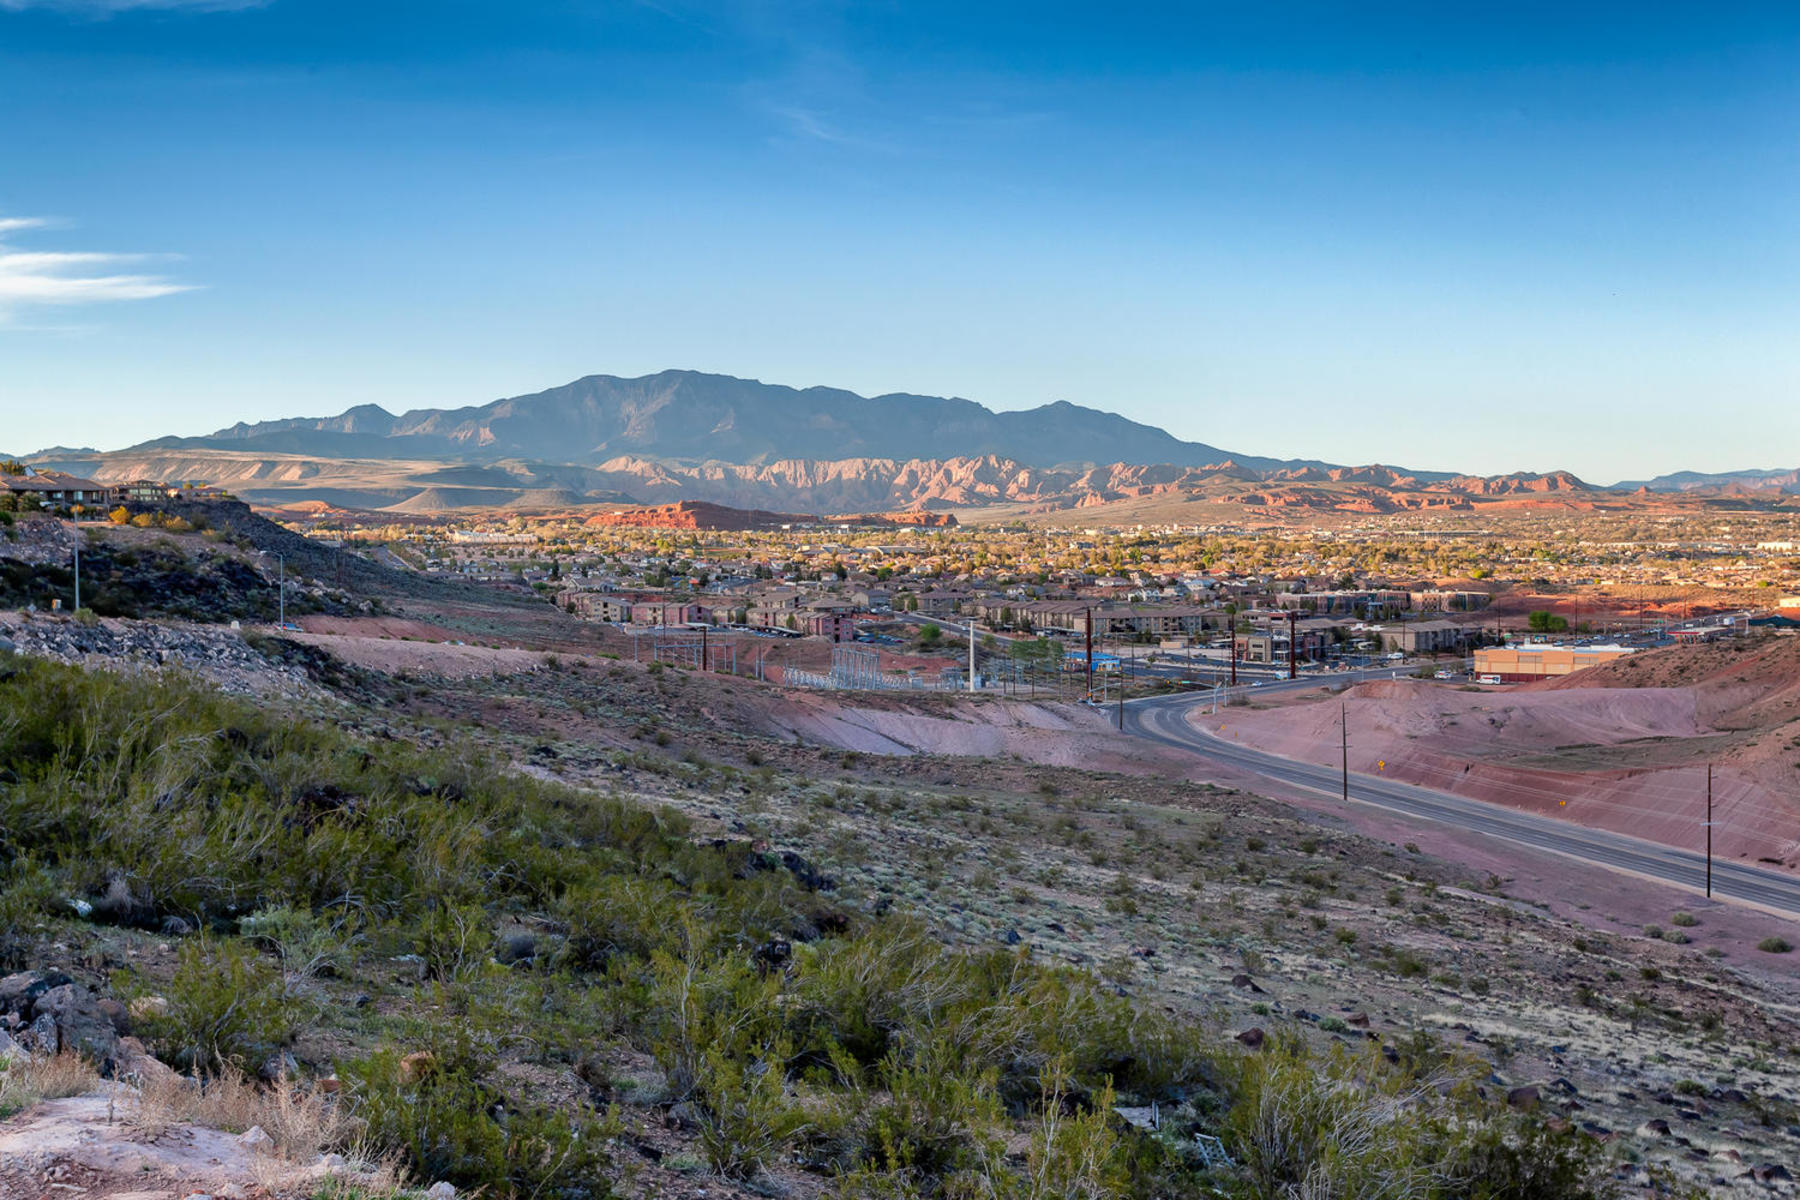 Land for Sale at Walkout Lot on Foremaster Ridge 1867 E 910 Cir S Lot 64 St. George, Utah 84790 United States